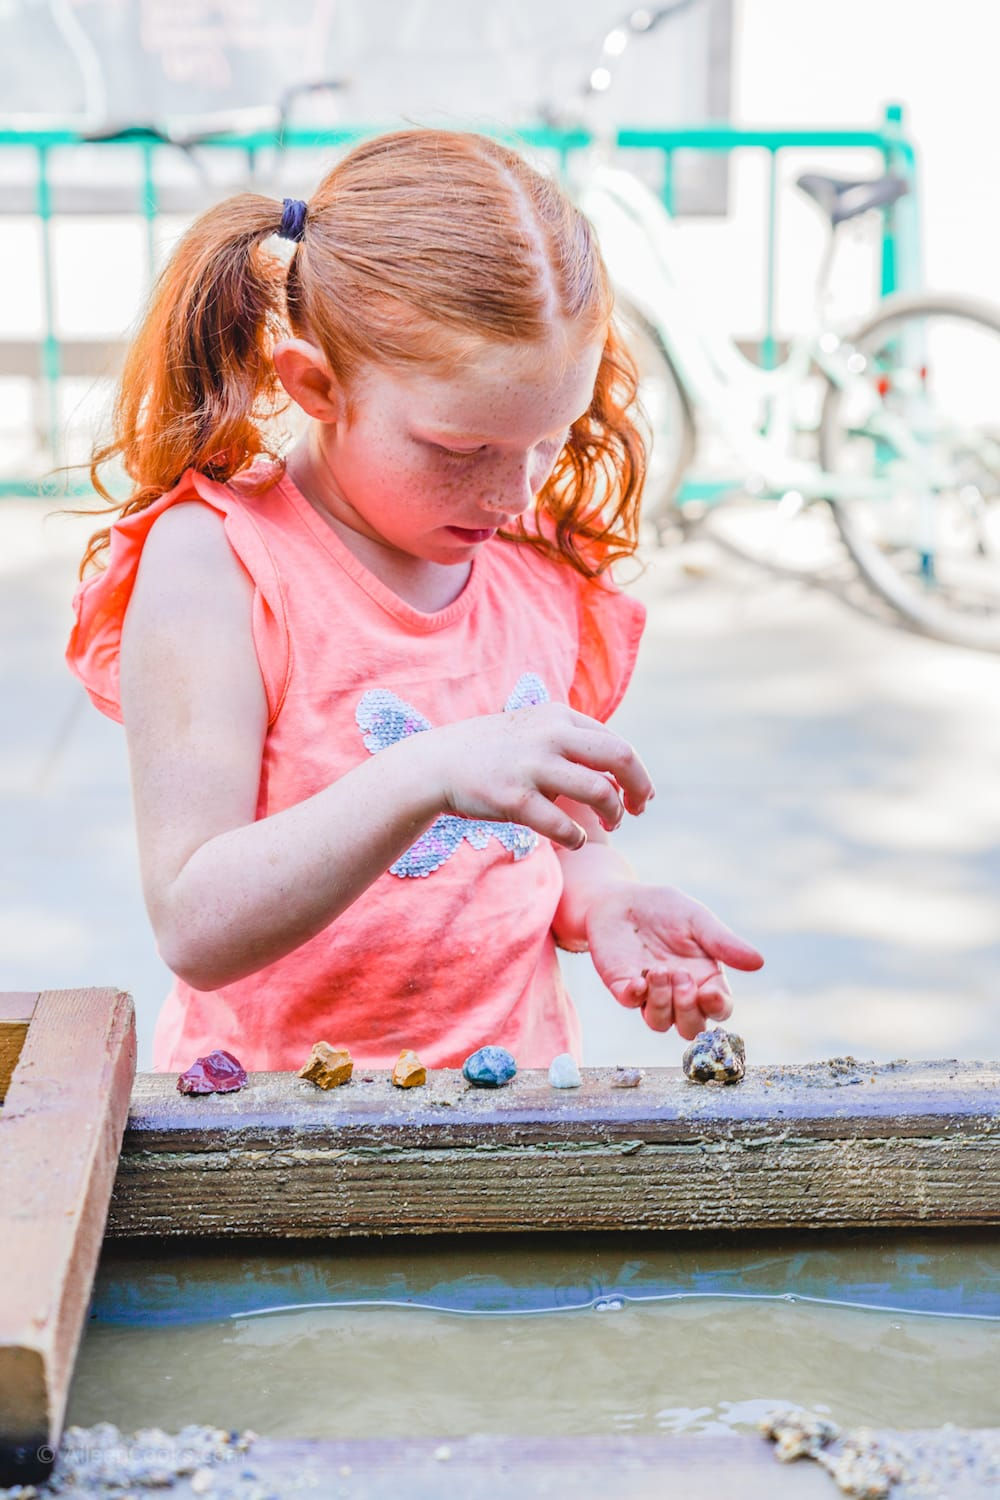 A girl lining up the gems she mined at Tower Park in Lodi, CA.